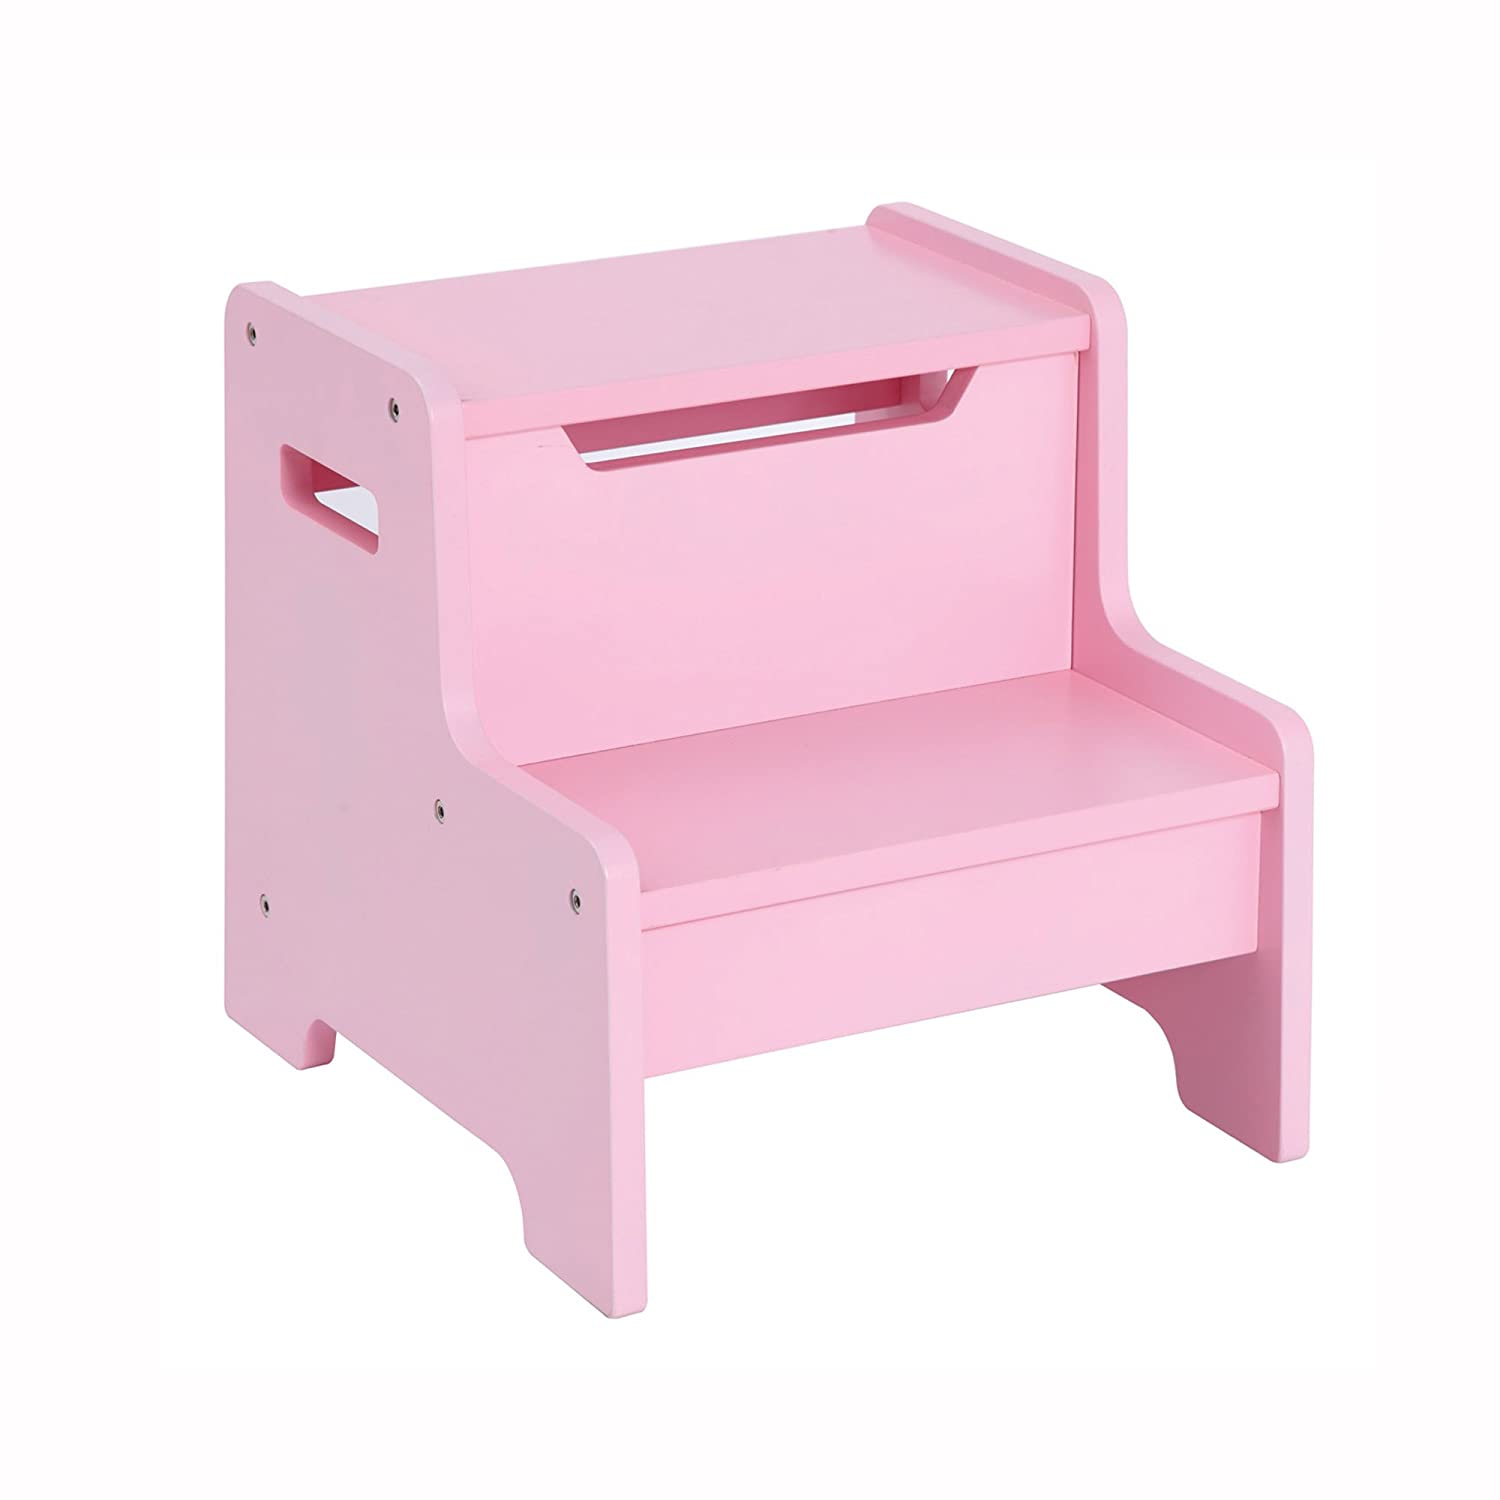 Guidecraft Expressions Step Stool, Pink aBaby 26821